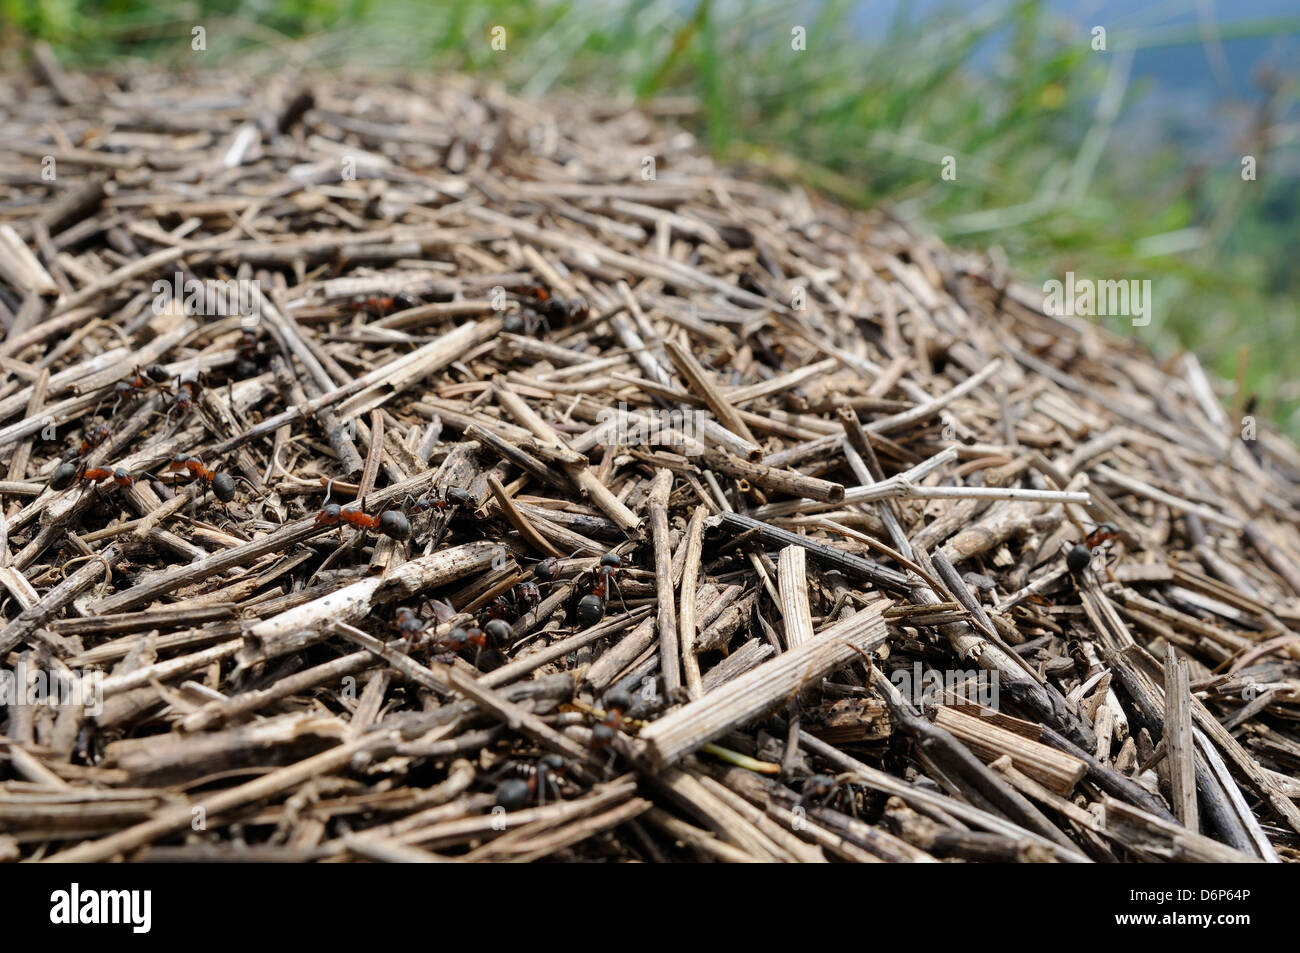 Black-backed meadow ants (Formica pratensis) on nest mound of old grass stems in montane pastureland, Julian Alps, - Stock Image